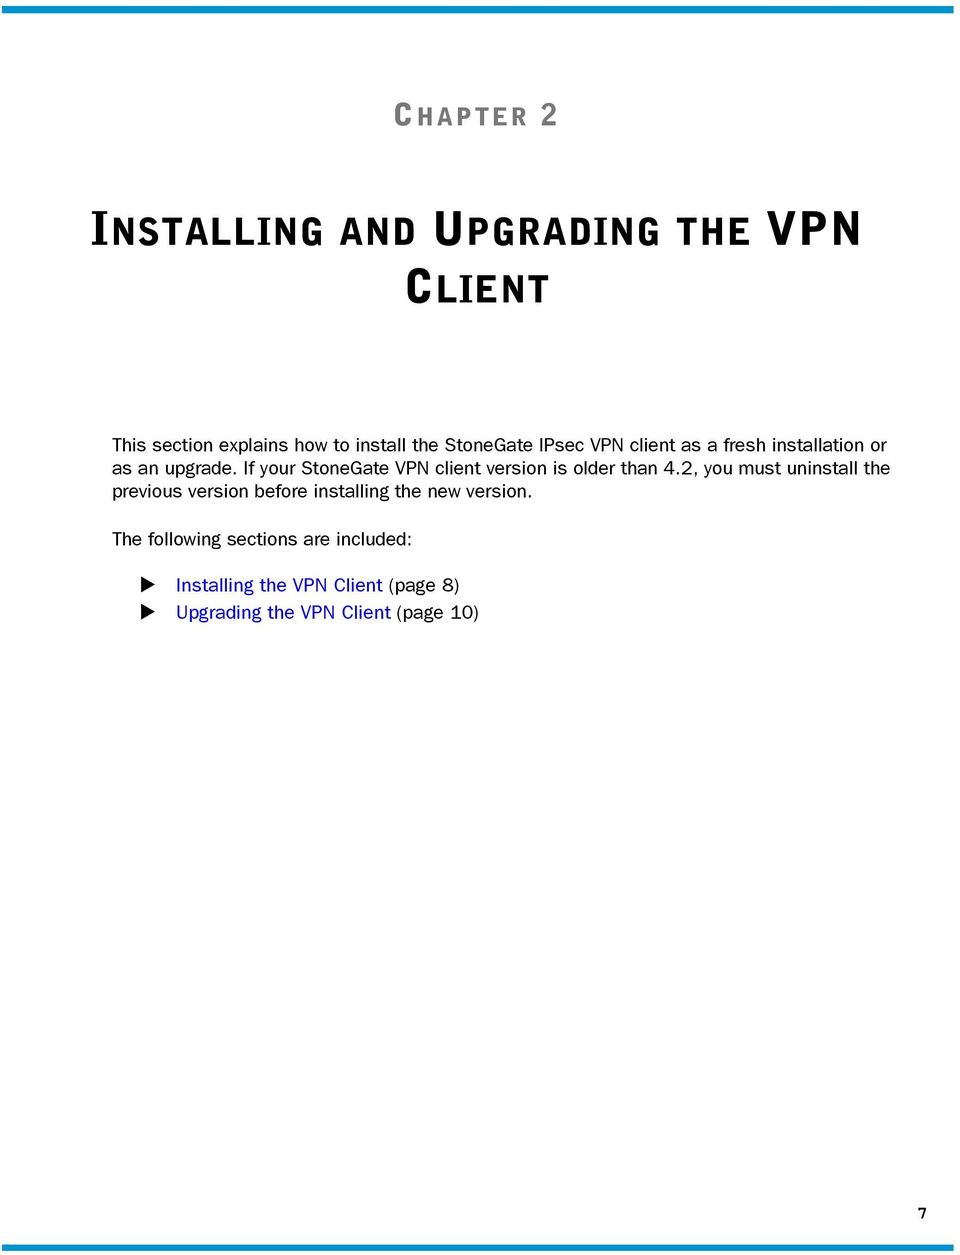 If your StoneGate VPN client version is older than 4.